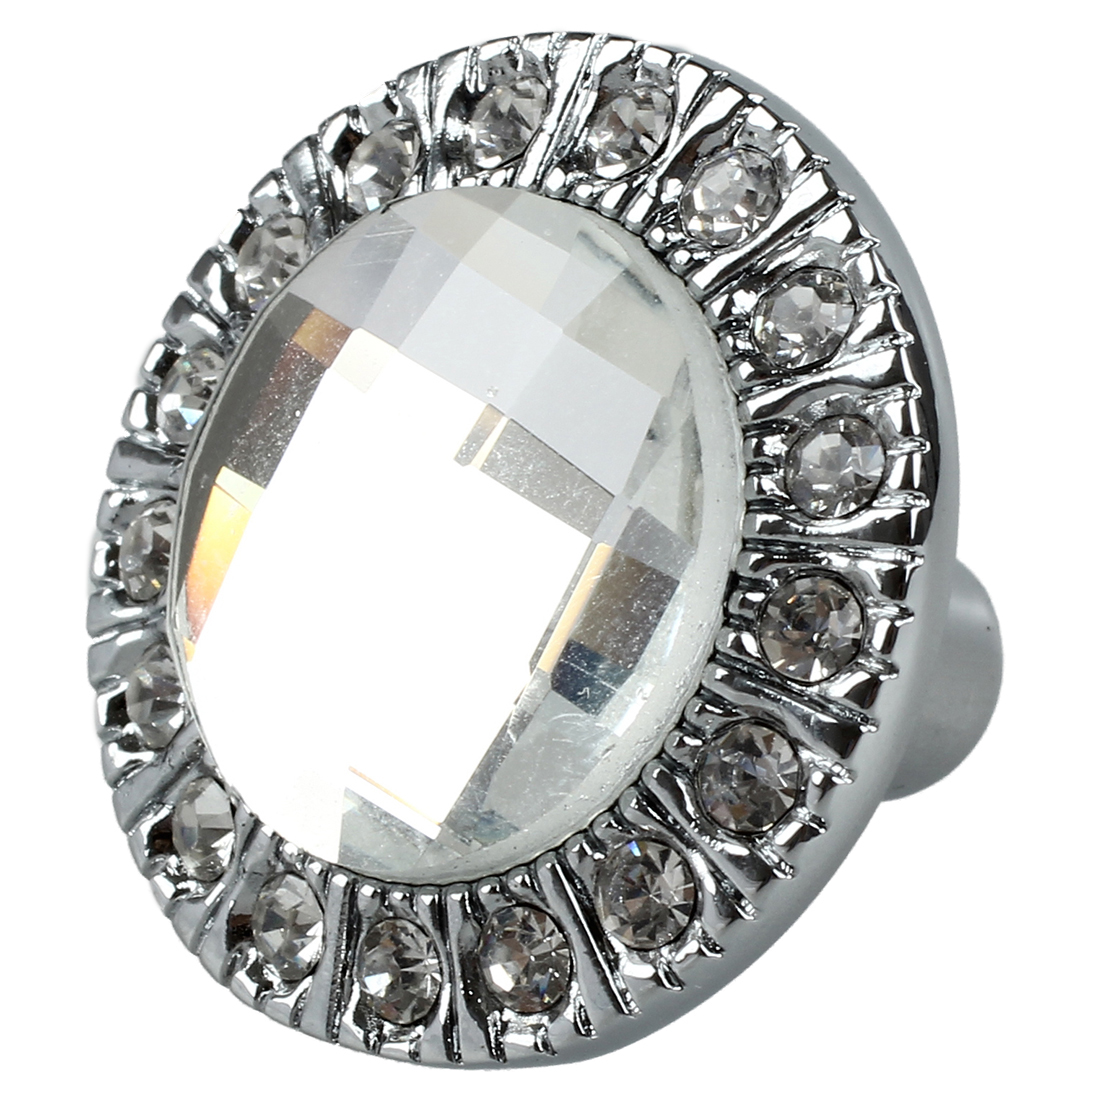 1pcs Crystal Glass Clear Round Pull Handle Glittering